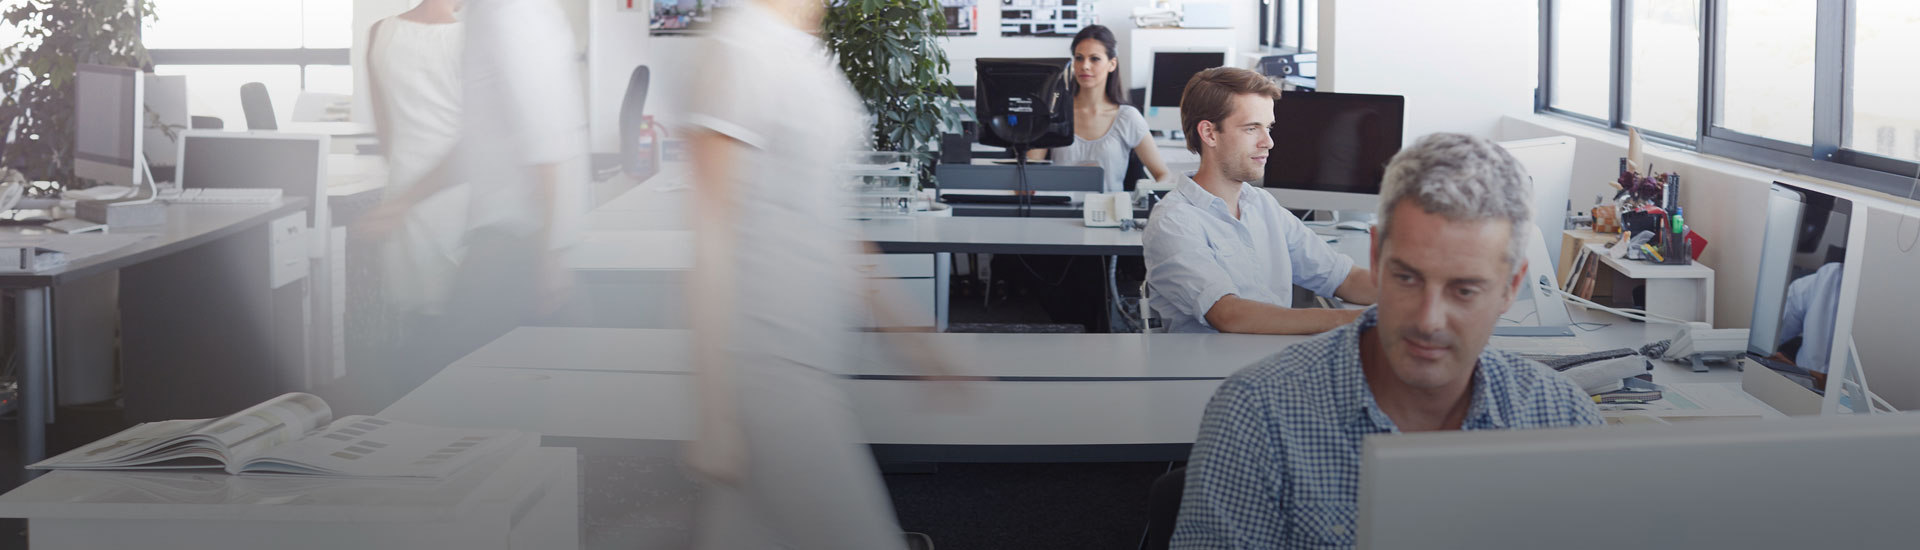 Empower your growing business by running live in the digital economy